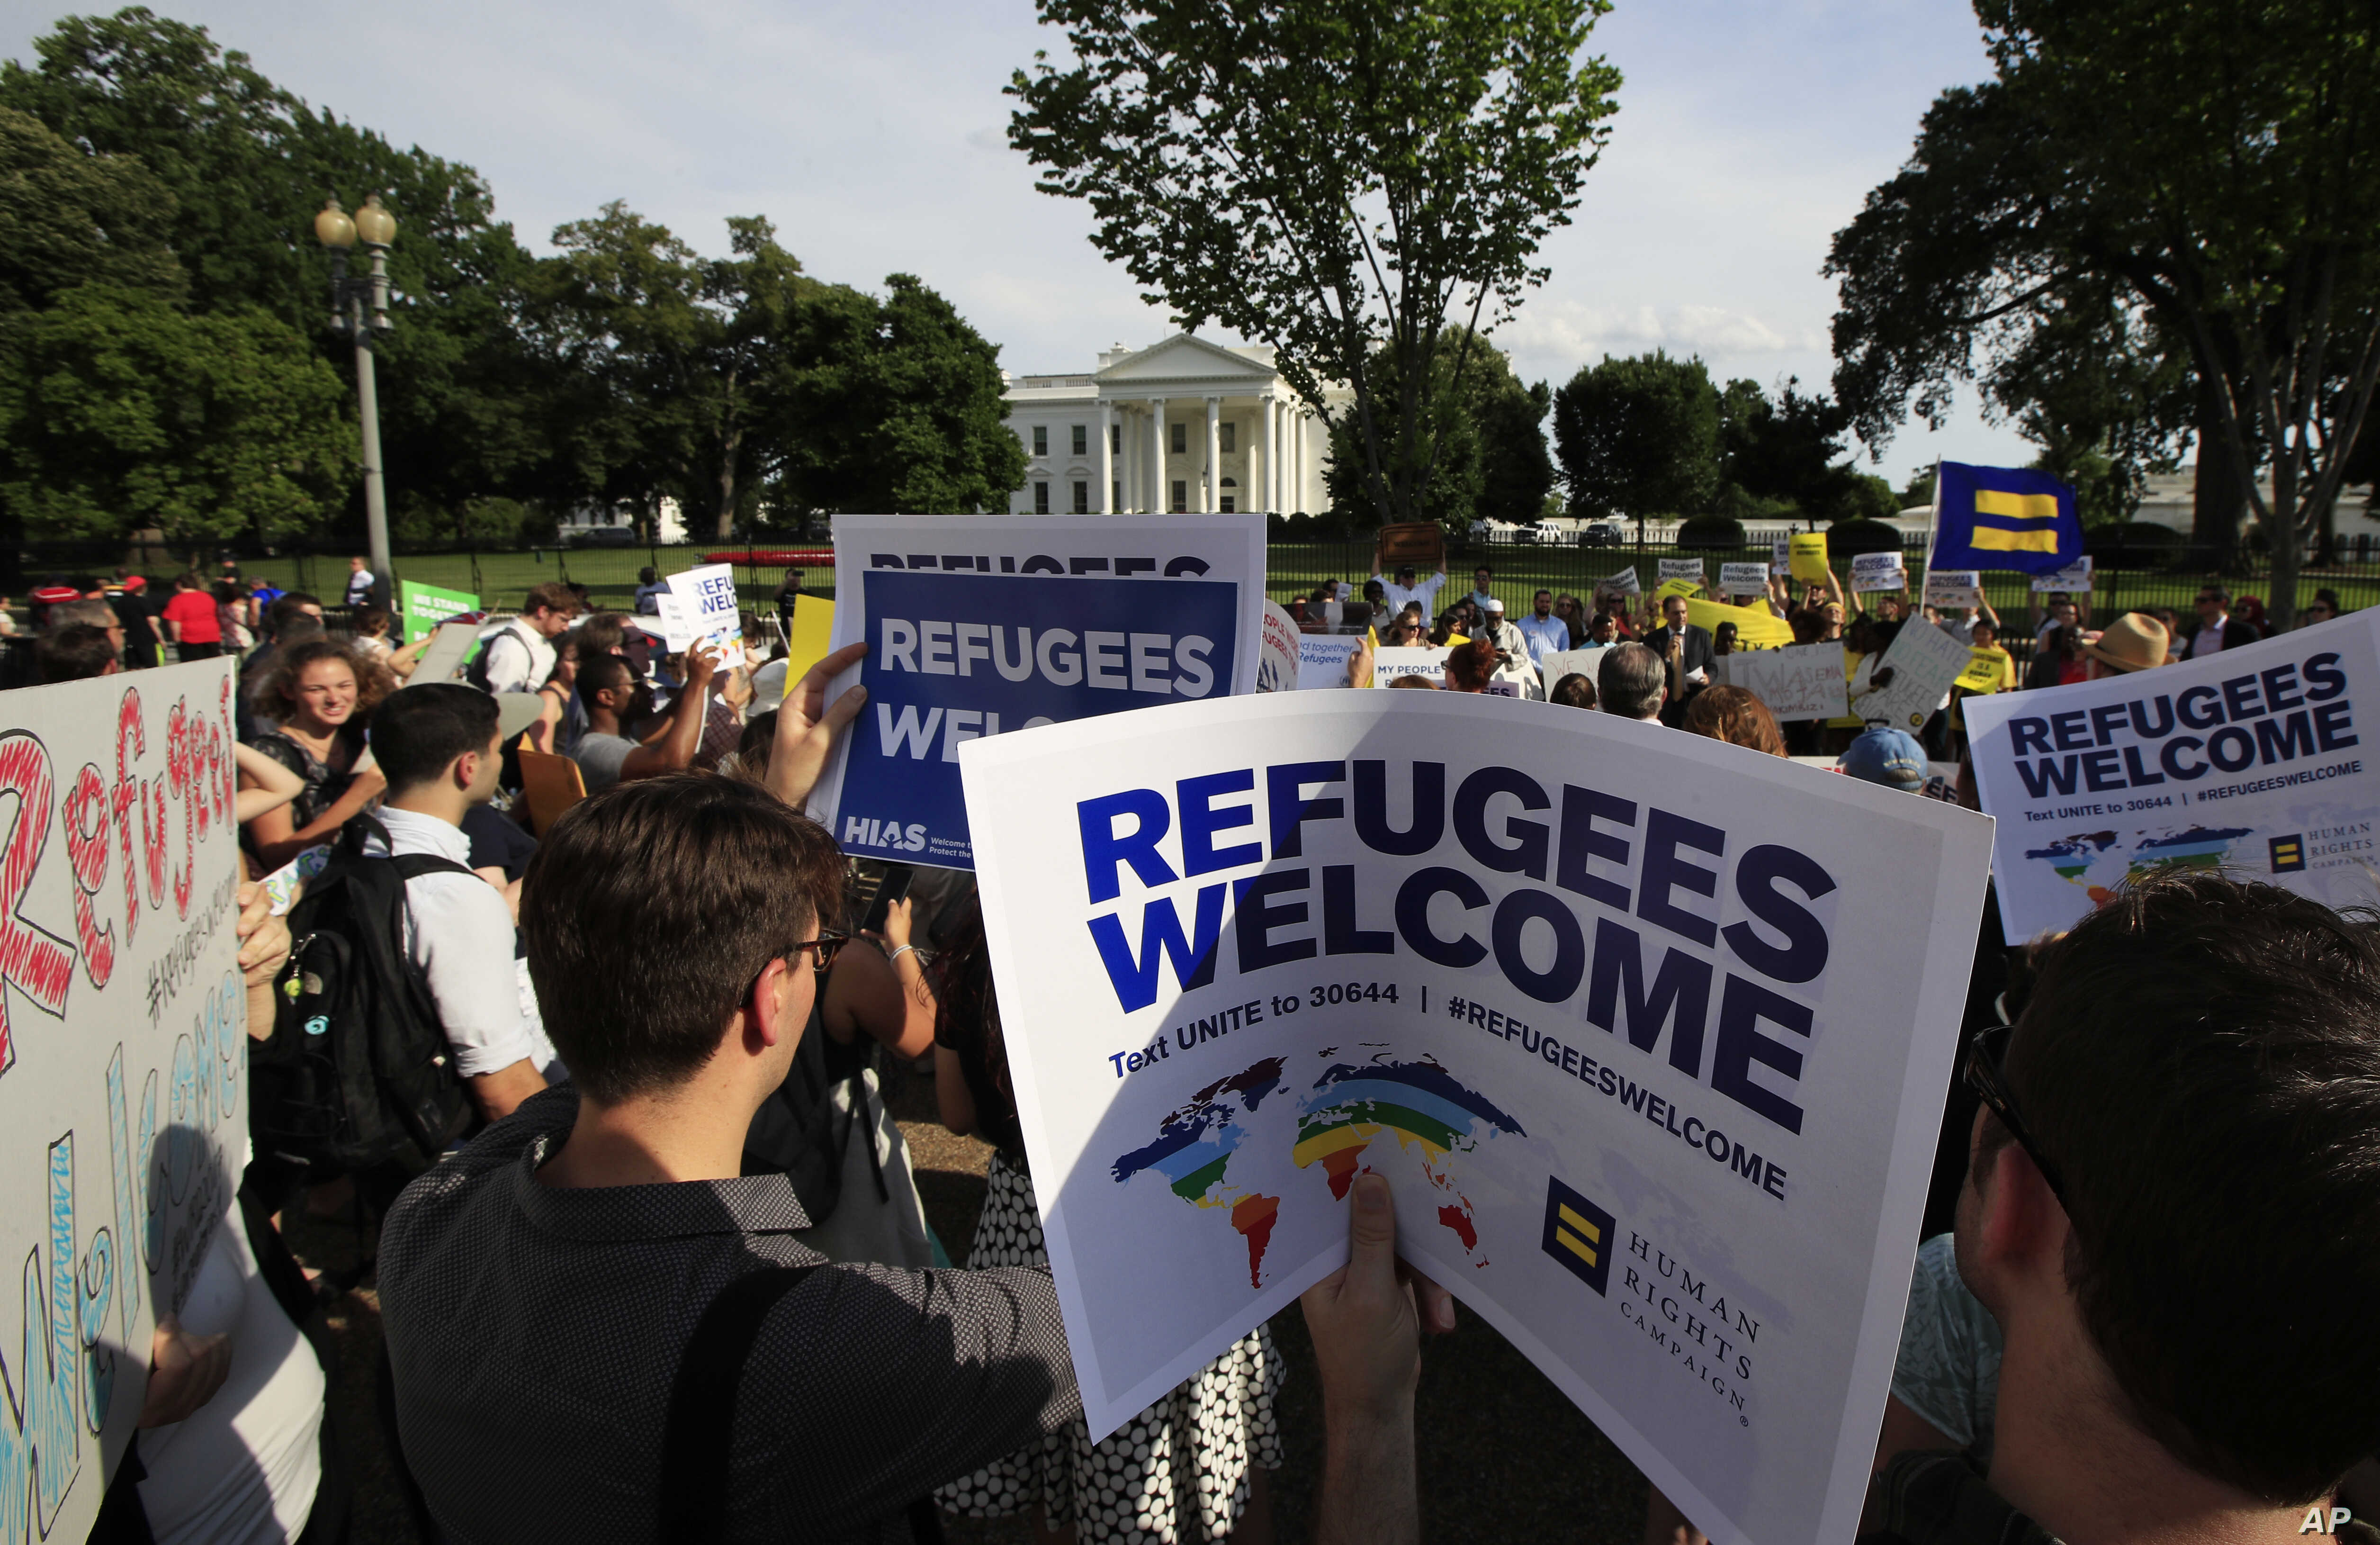 FILE - Refugees and community activists gather in front of the White House in Washington, June 20, 2017, during a rally in solidarity with refugees to commemorate World Refugee Day.